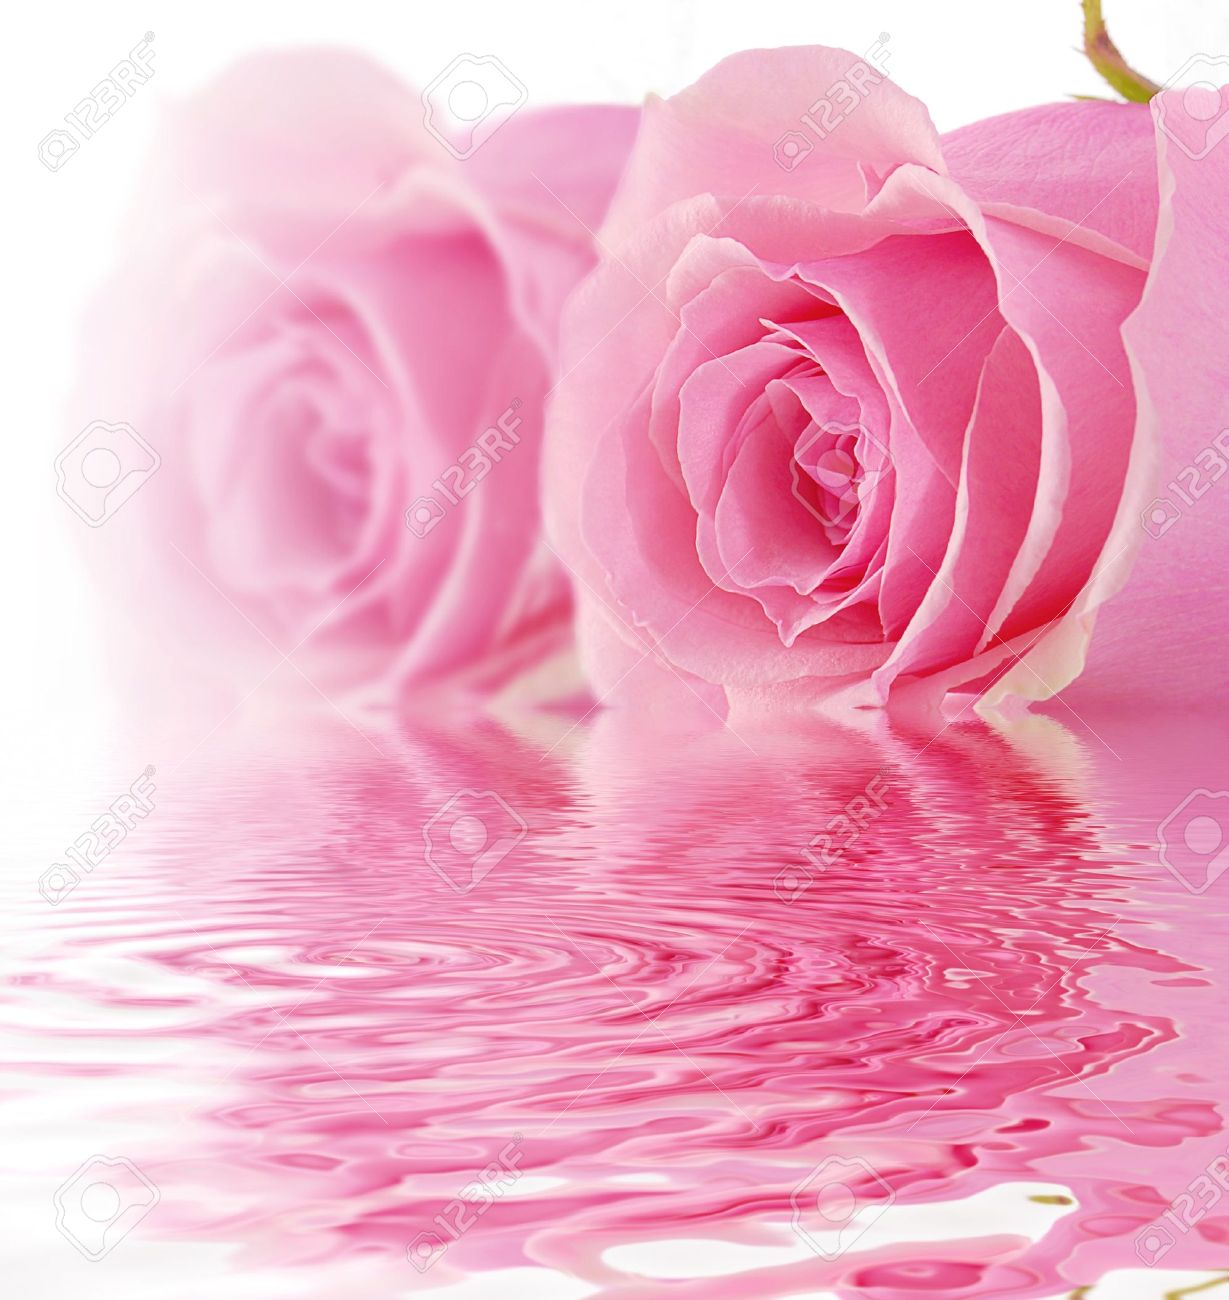 26 pink rose white background on wallpapersafari - Pink rose black background wallpaper ...